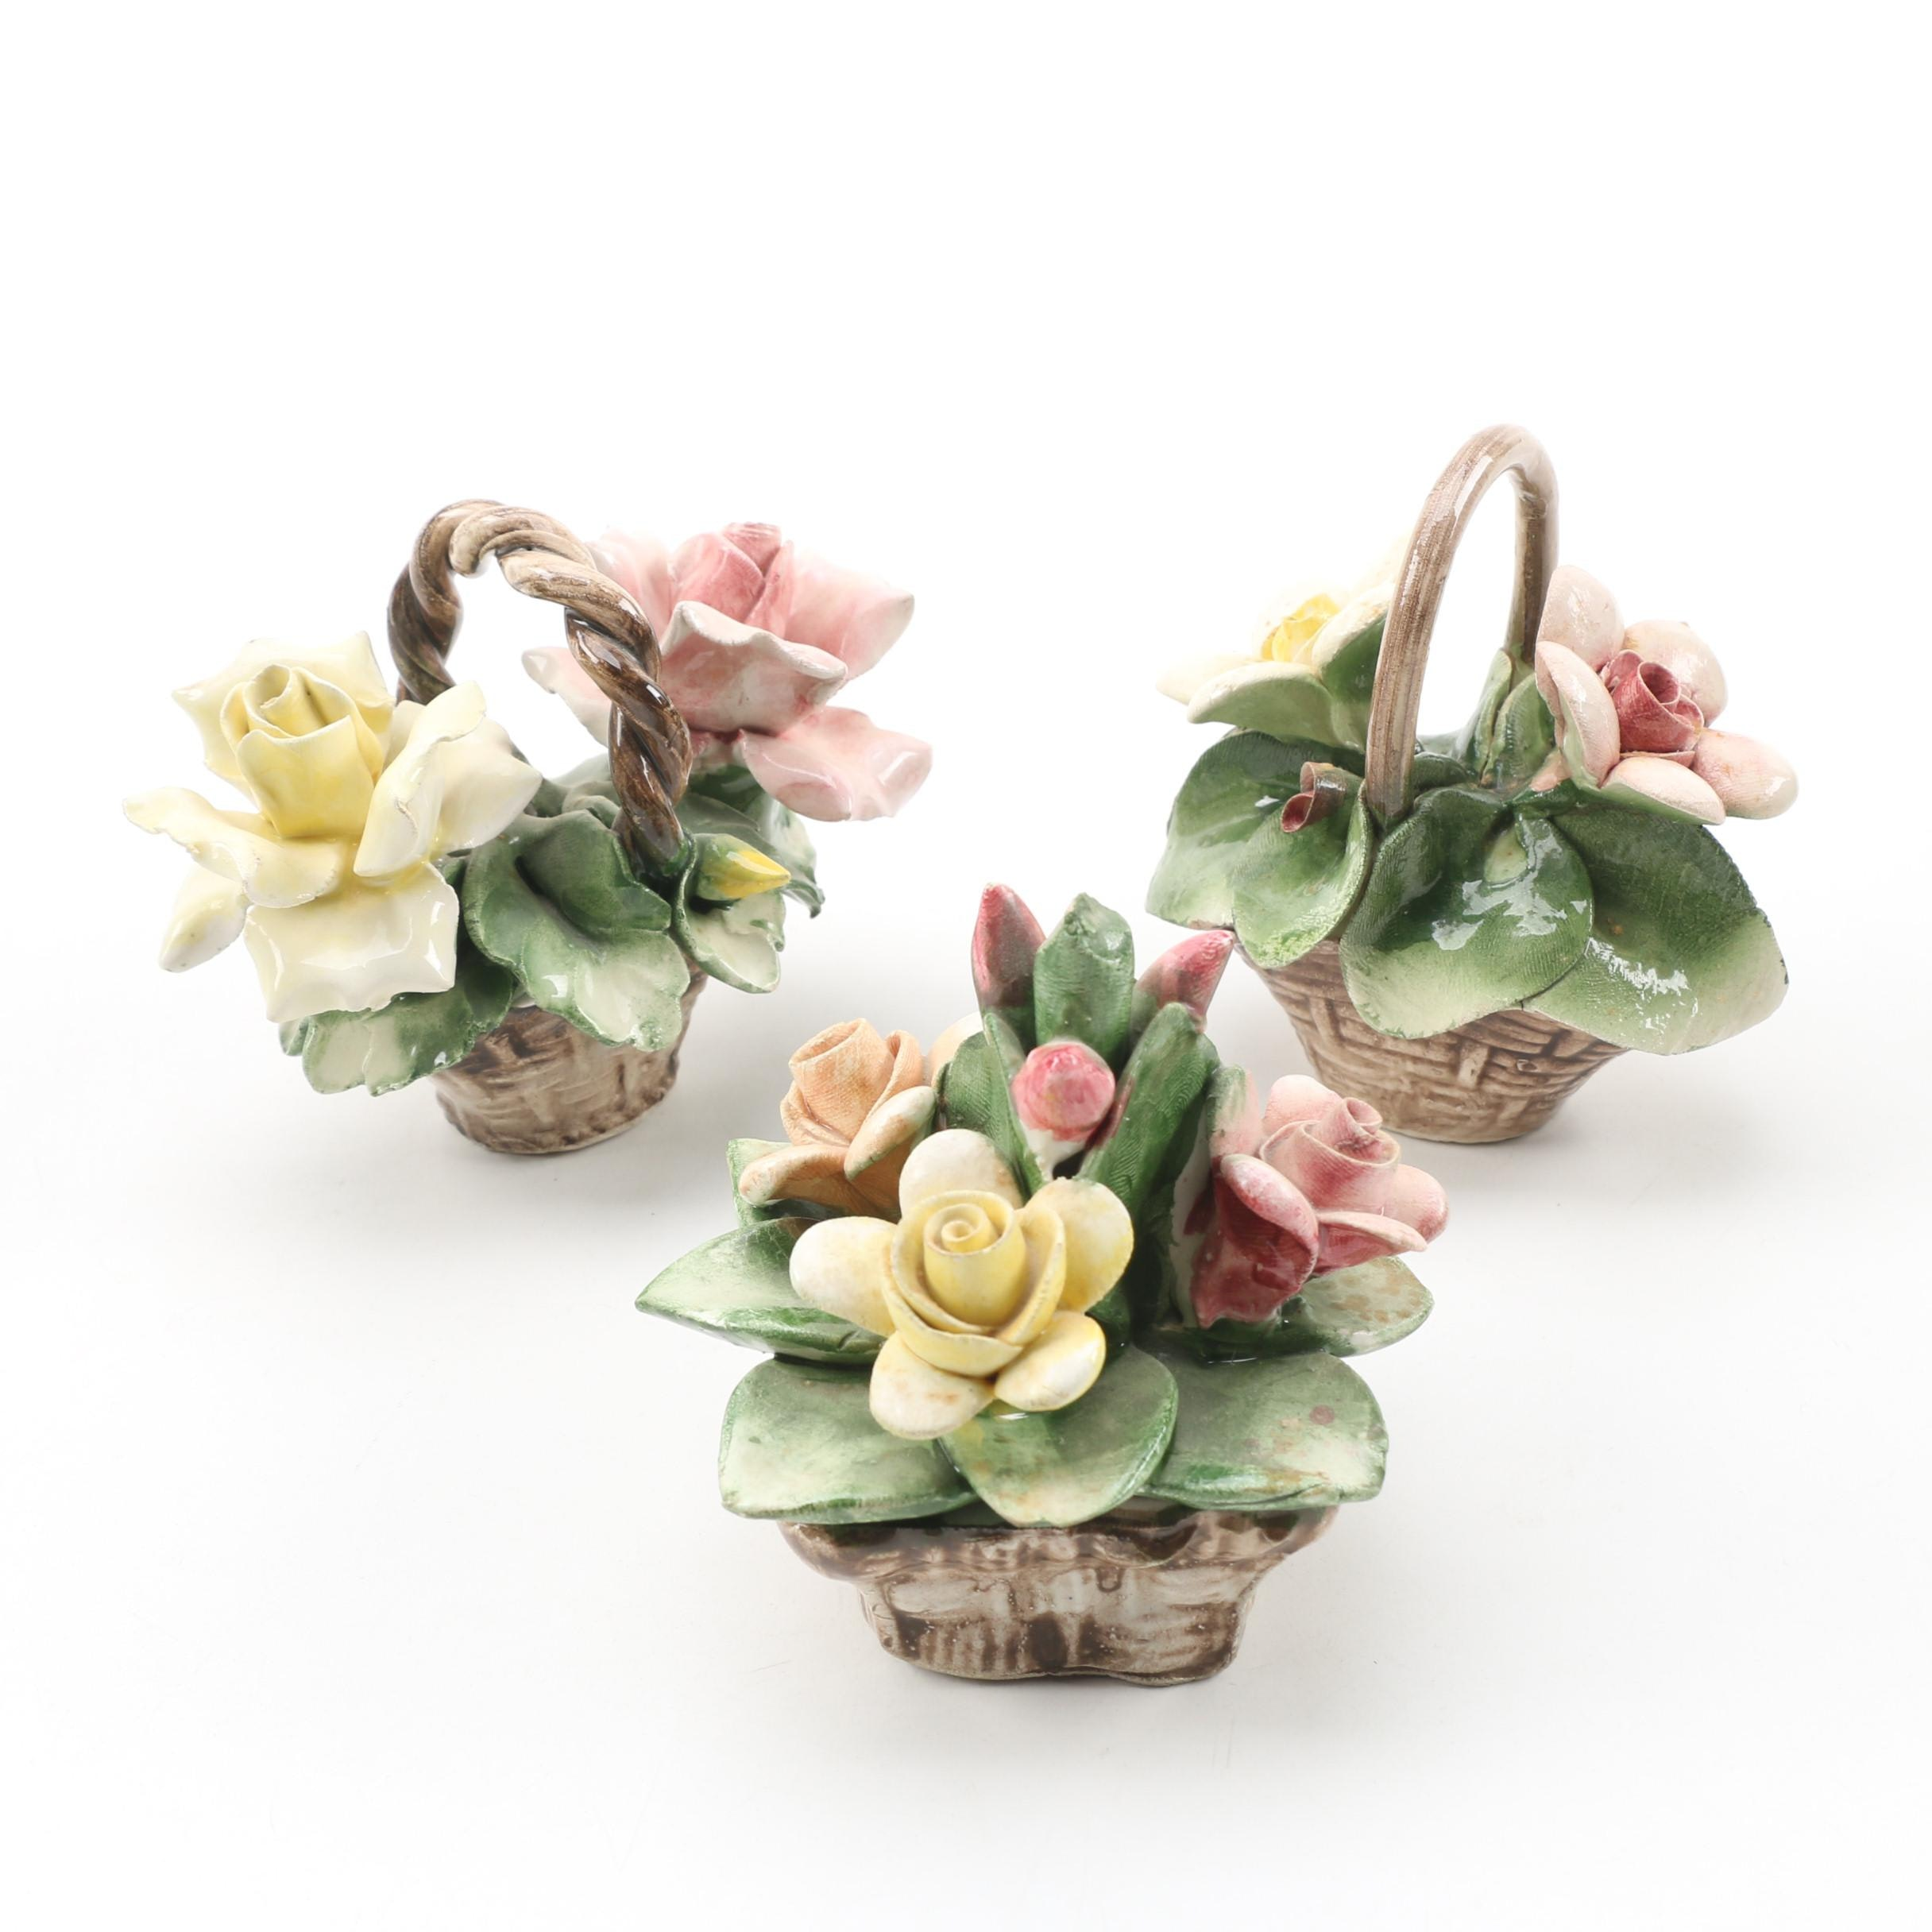 Capodimonte Porcelain Flower Figurines